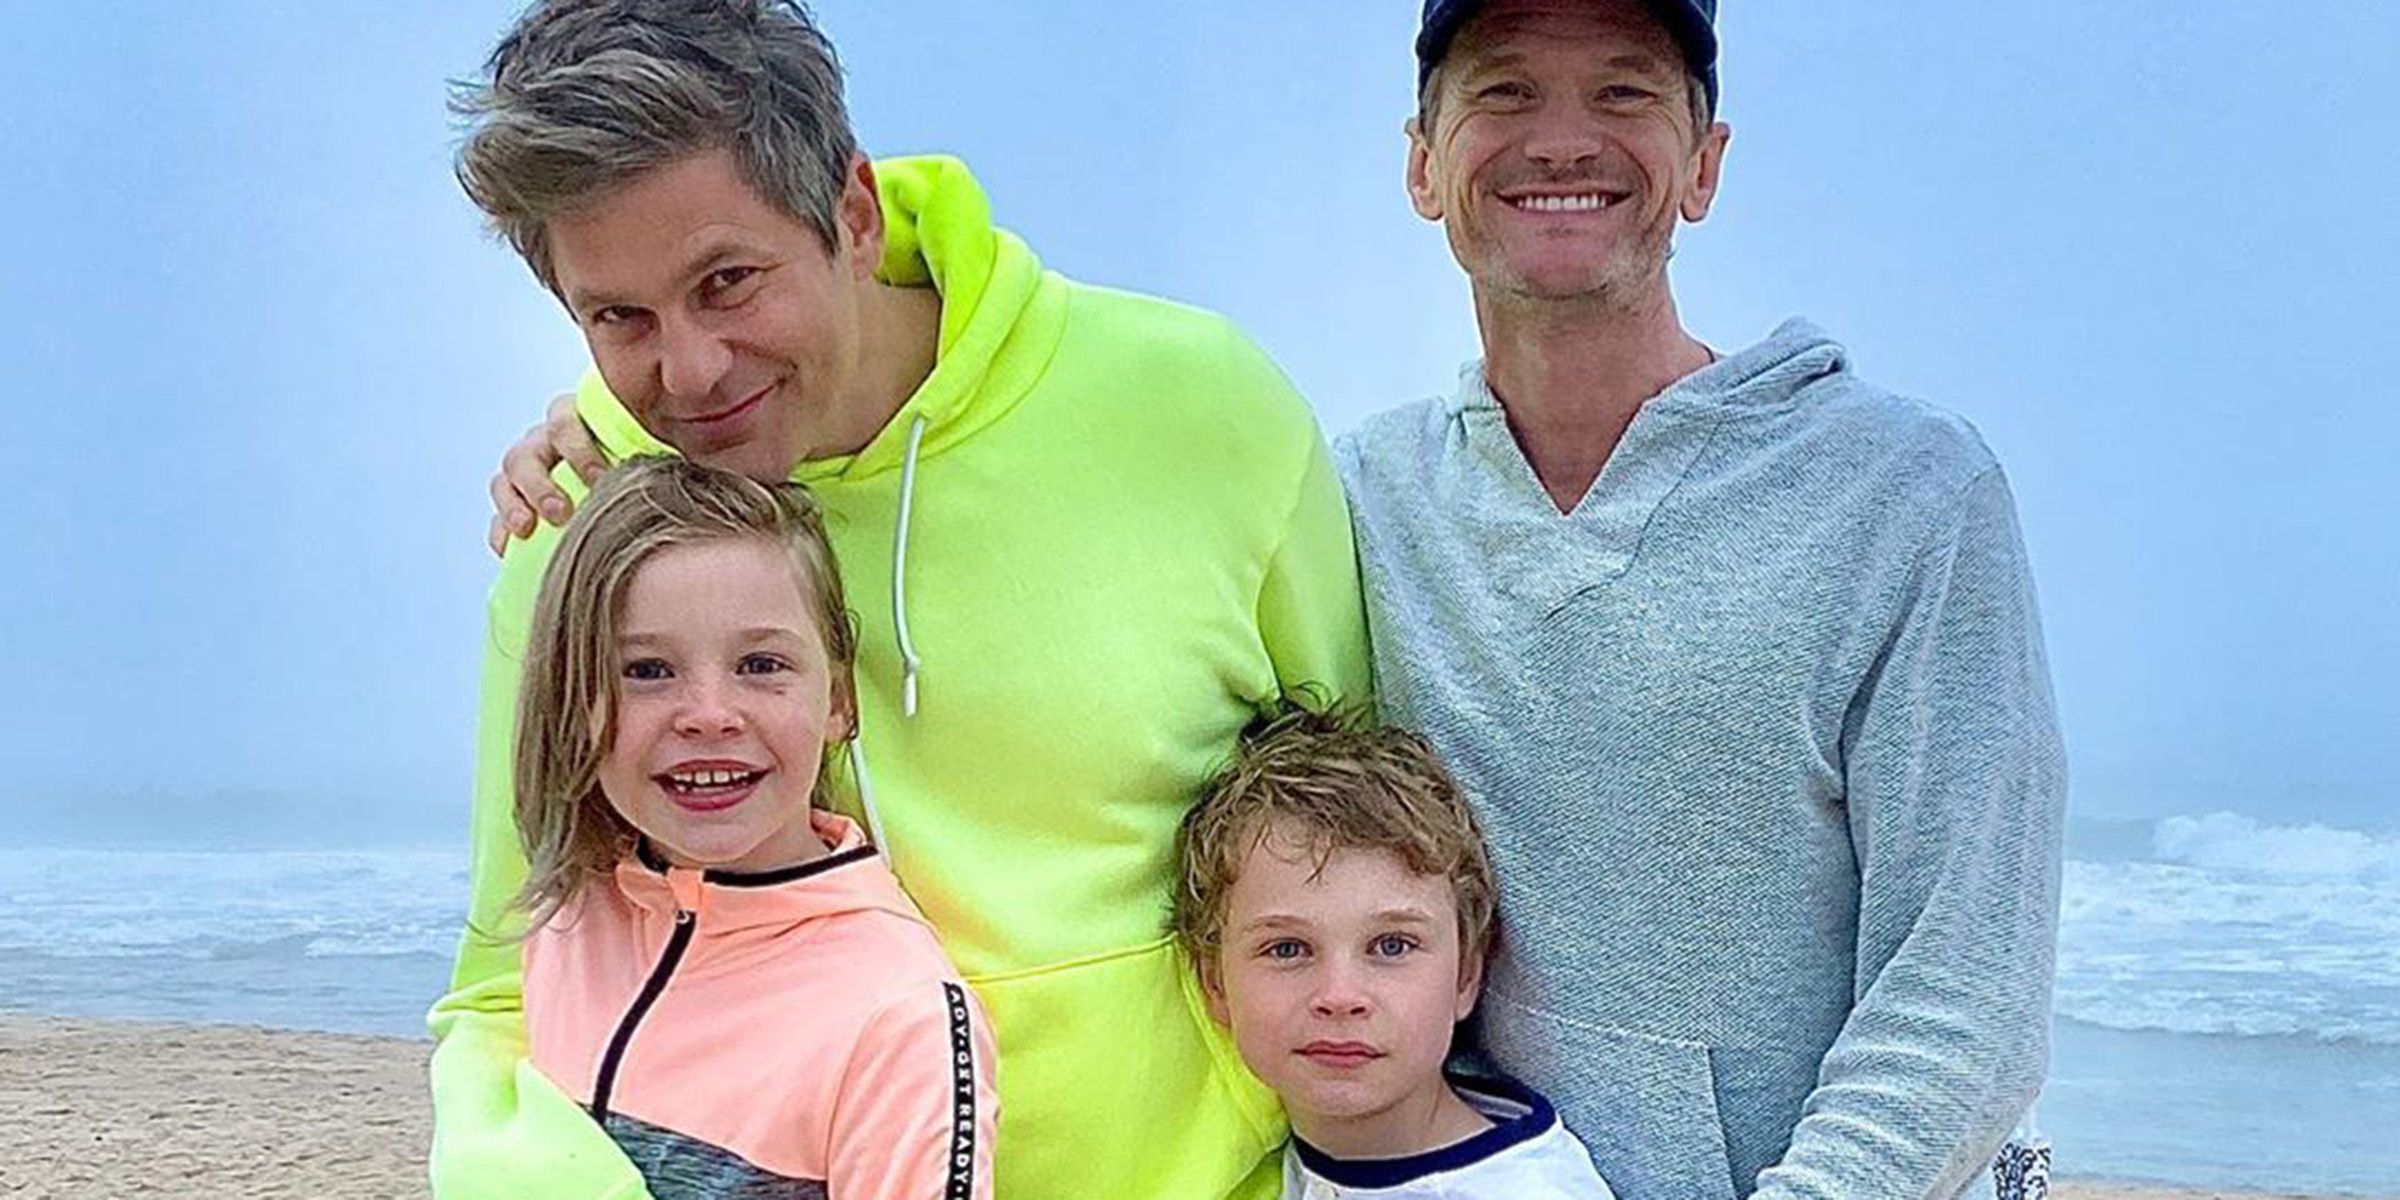 Neil Patrick Harris reveals he and his family had coronavirus earlier this year